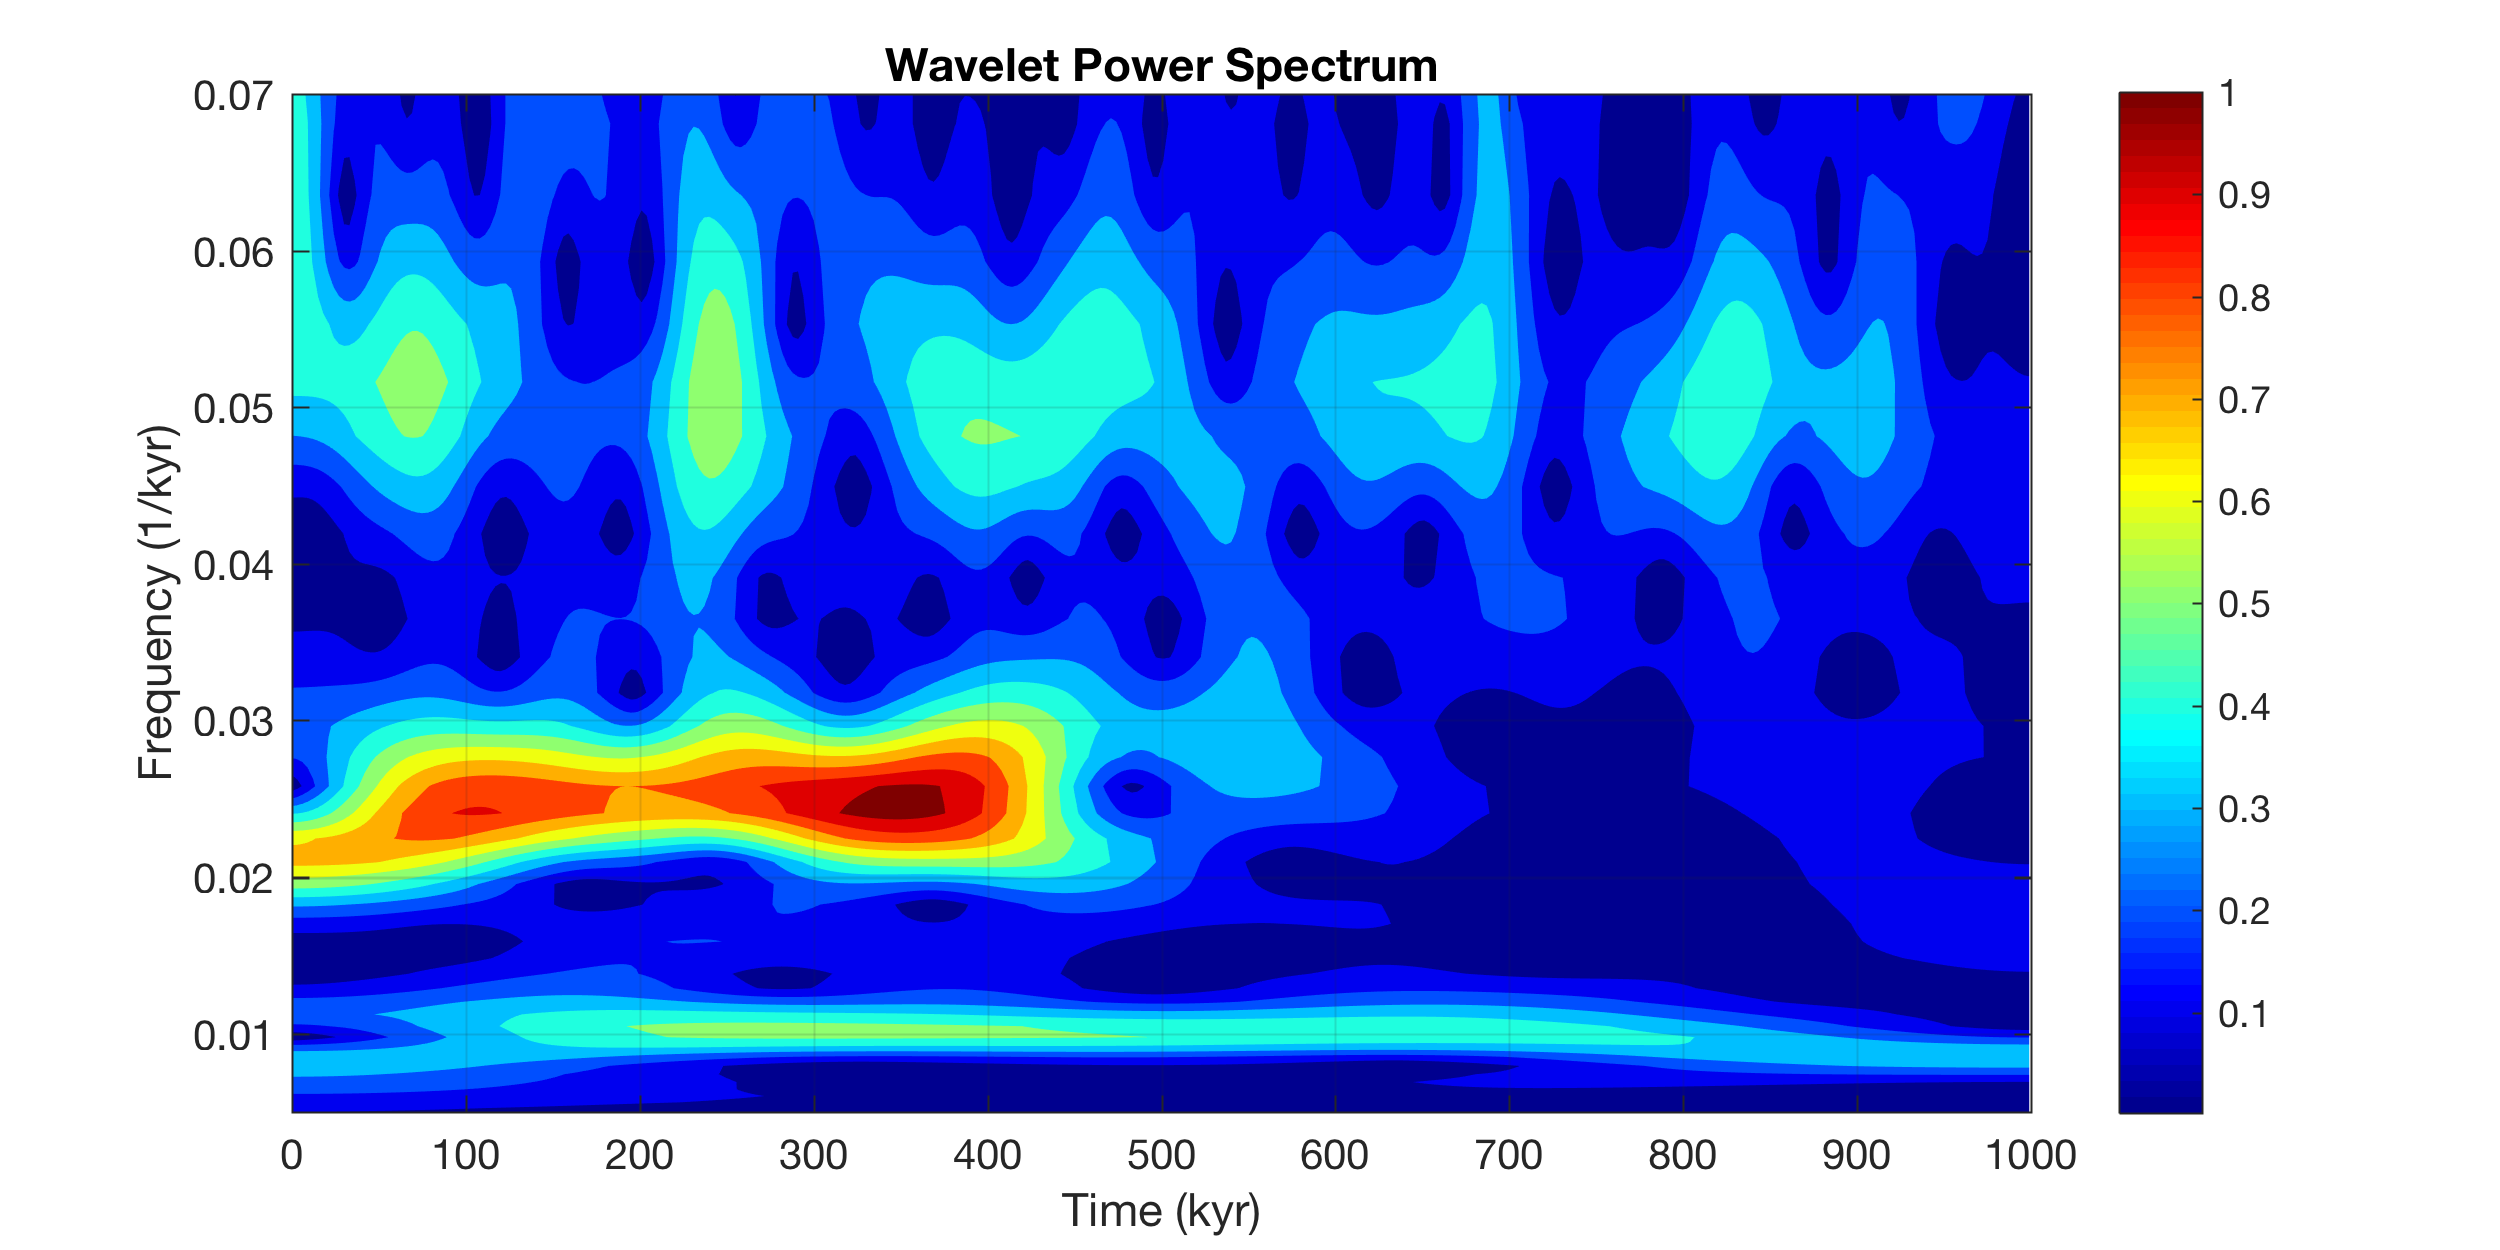 Calculating the Continuous 1-D Wavelet Transform with the new